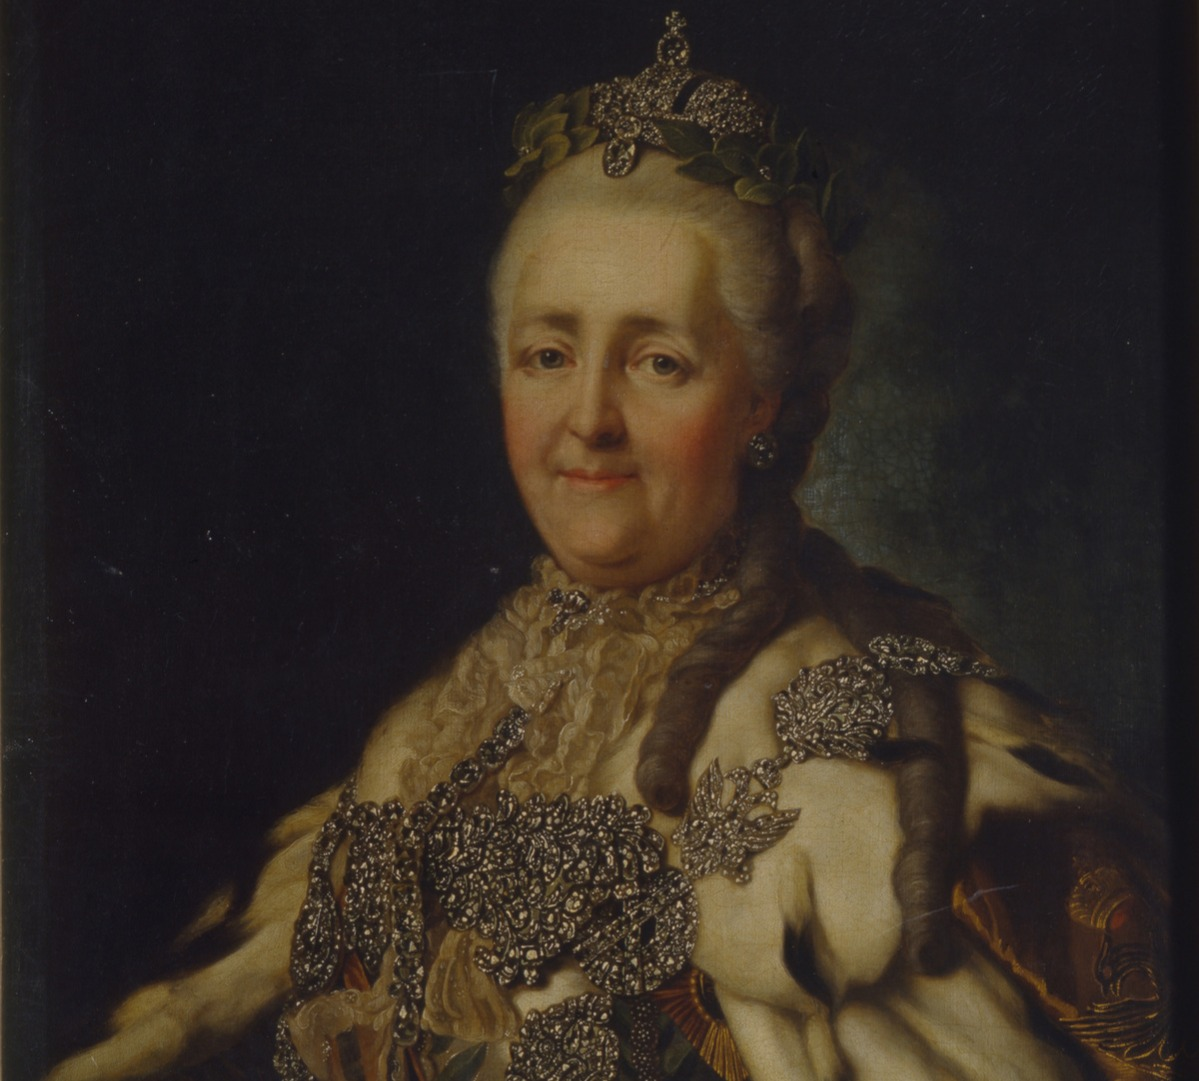 Portrait of Empress Catherine II (1729-1796). Found in the collection of the Regional Art Museum, Vinnytsia.